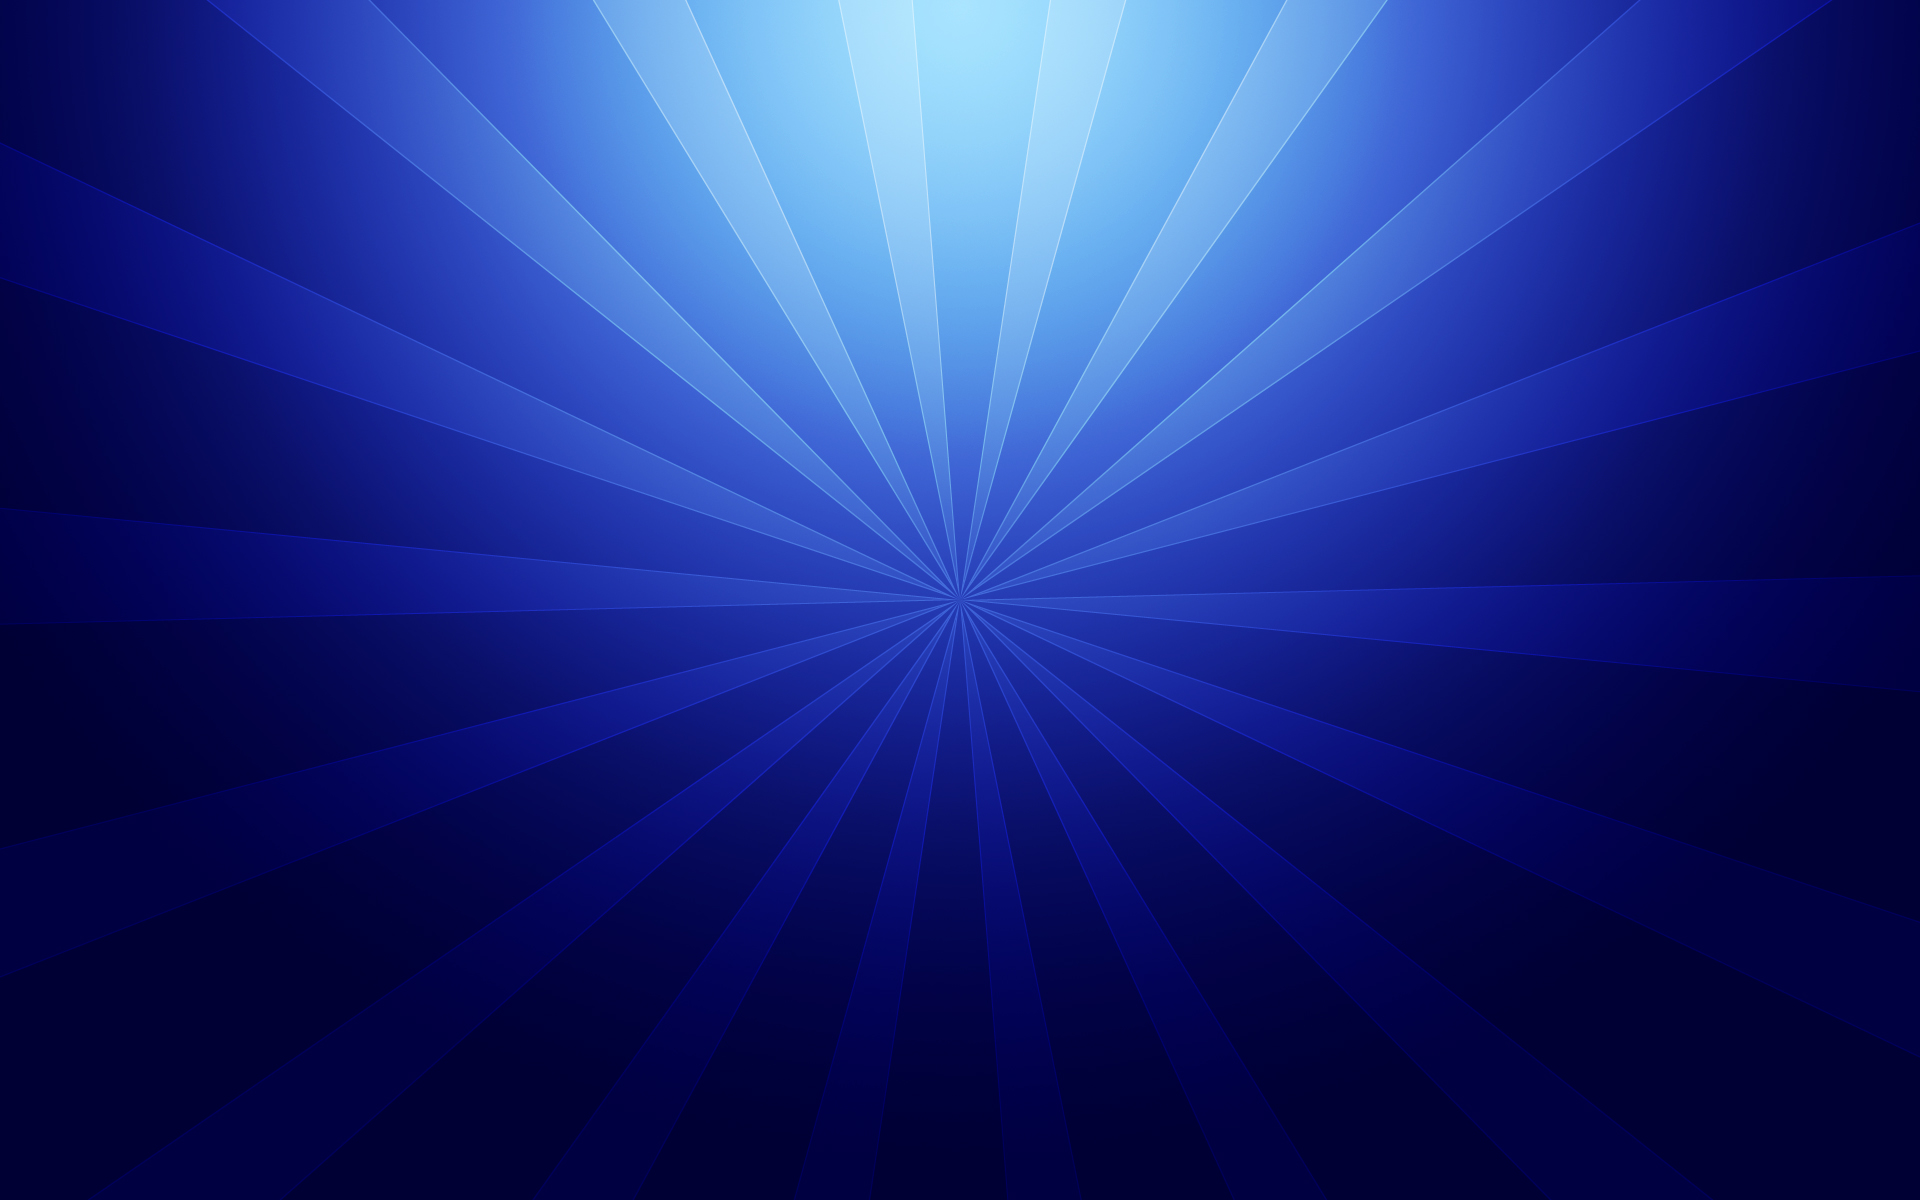 Cool Blue Backgrounds